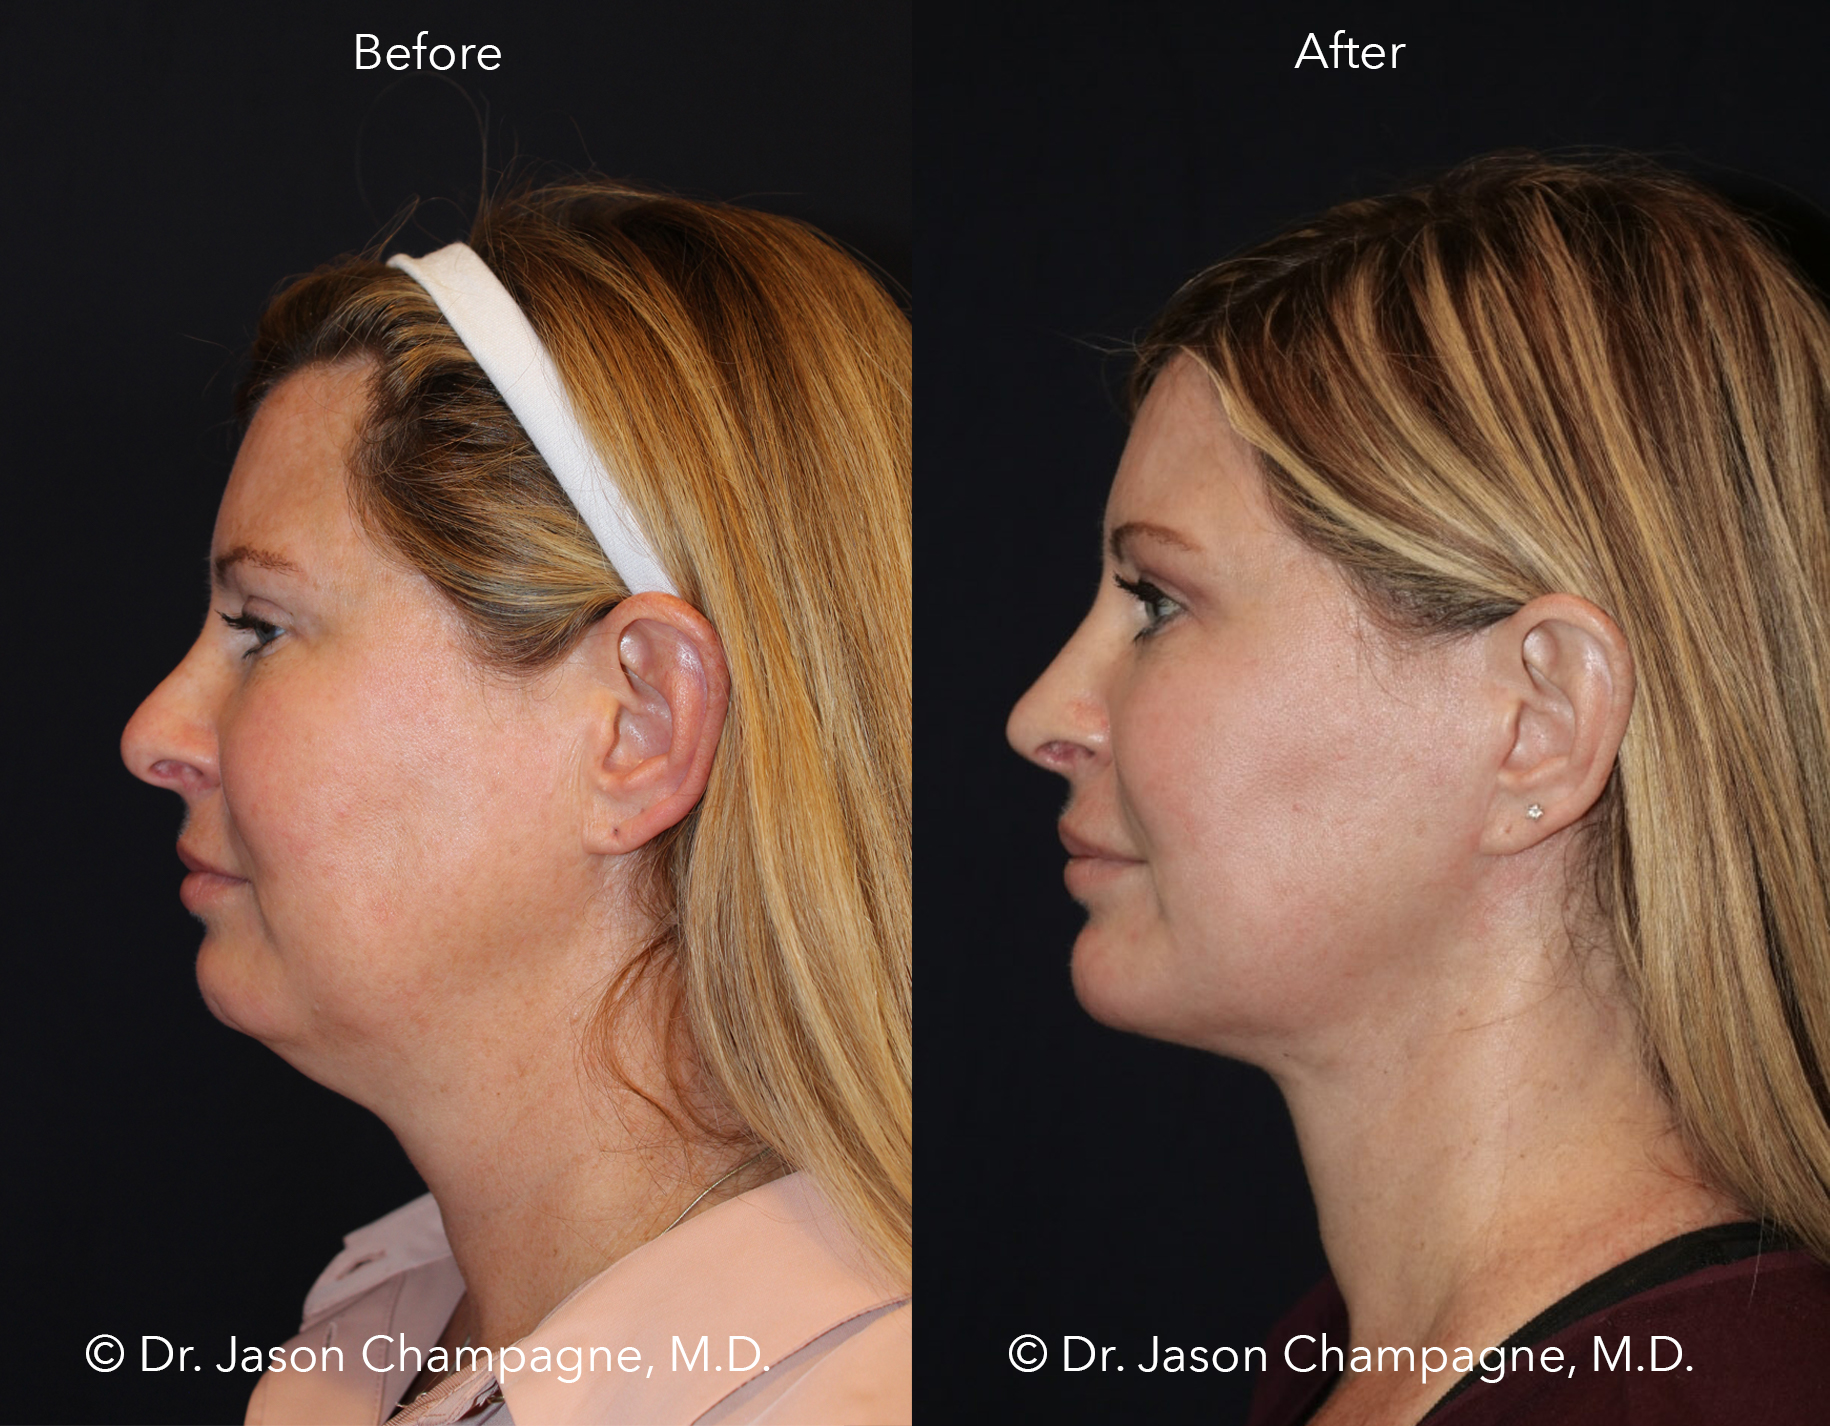 Dr-Jason-Champagne-Neck-Liposuction-Chin-Implant-Neck-Lift-Face-Lift-Rhinoplasty-Advanced-Radio-Frequency-Skin-Tightening-CO2-Laser-Skin-Resurfacing-Buccal-Fat-Excision-Before-and-After-Profile.jpg